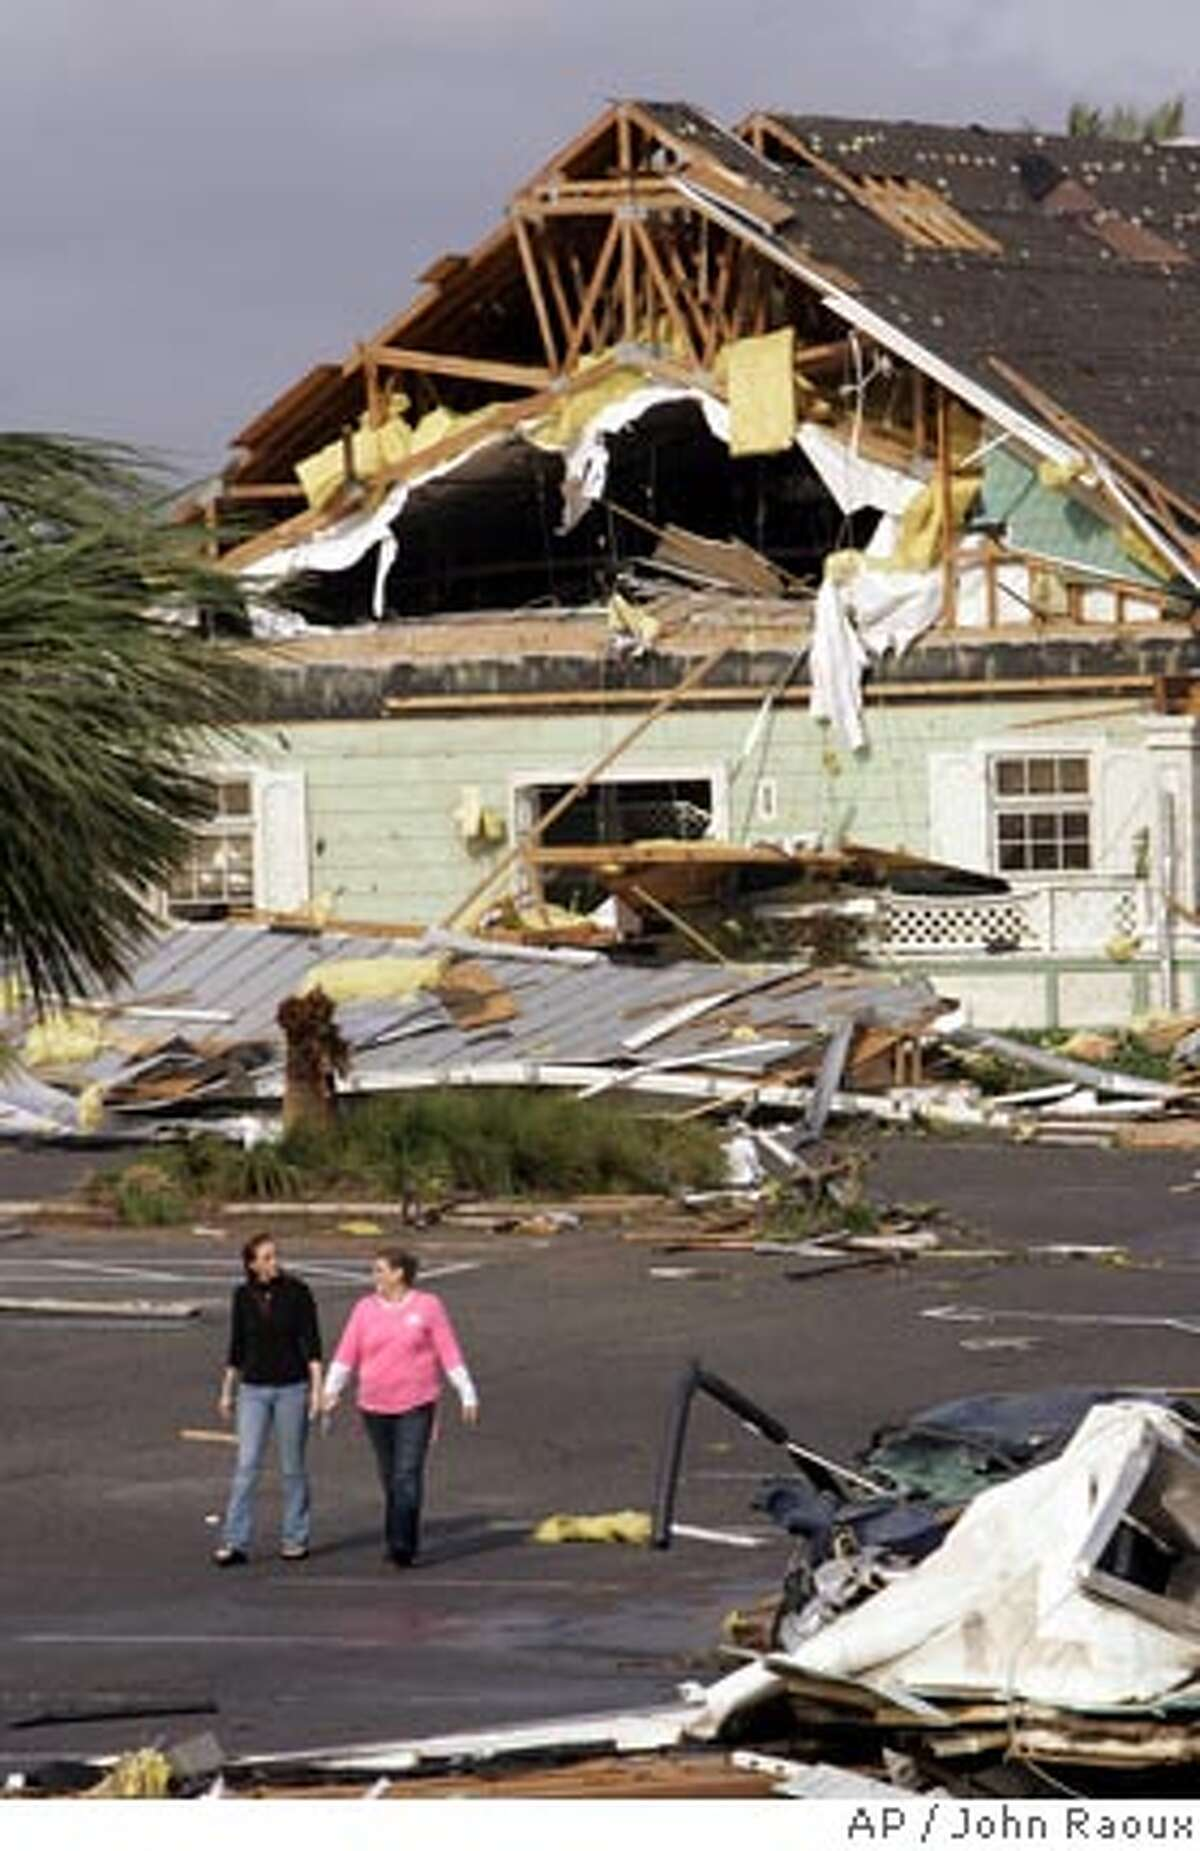 People walk through a residential neighborhood after damage from a tornado that hit early in the morning in The Villages, Fla., Friday Feb. 2, 2007. Storms blew through central Florida early Friday, killing at least 14 people, flattening dozens of homes and a church and lifting a tractor trailer into the air, authorities said. (AP Photo/John Raoux)